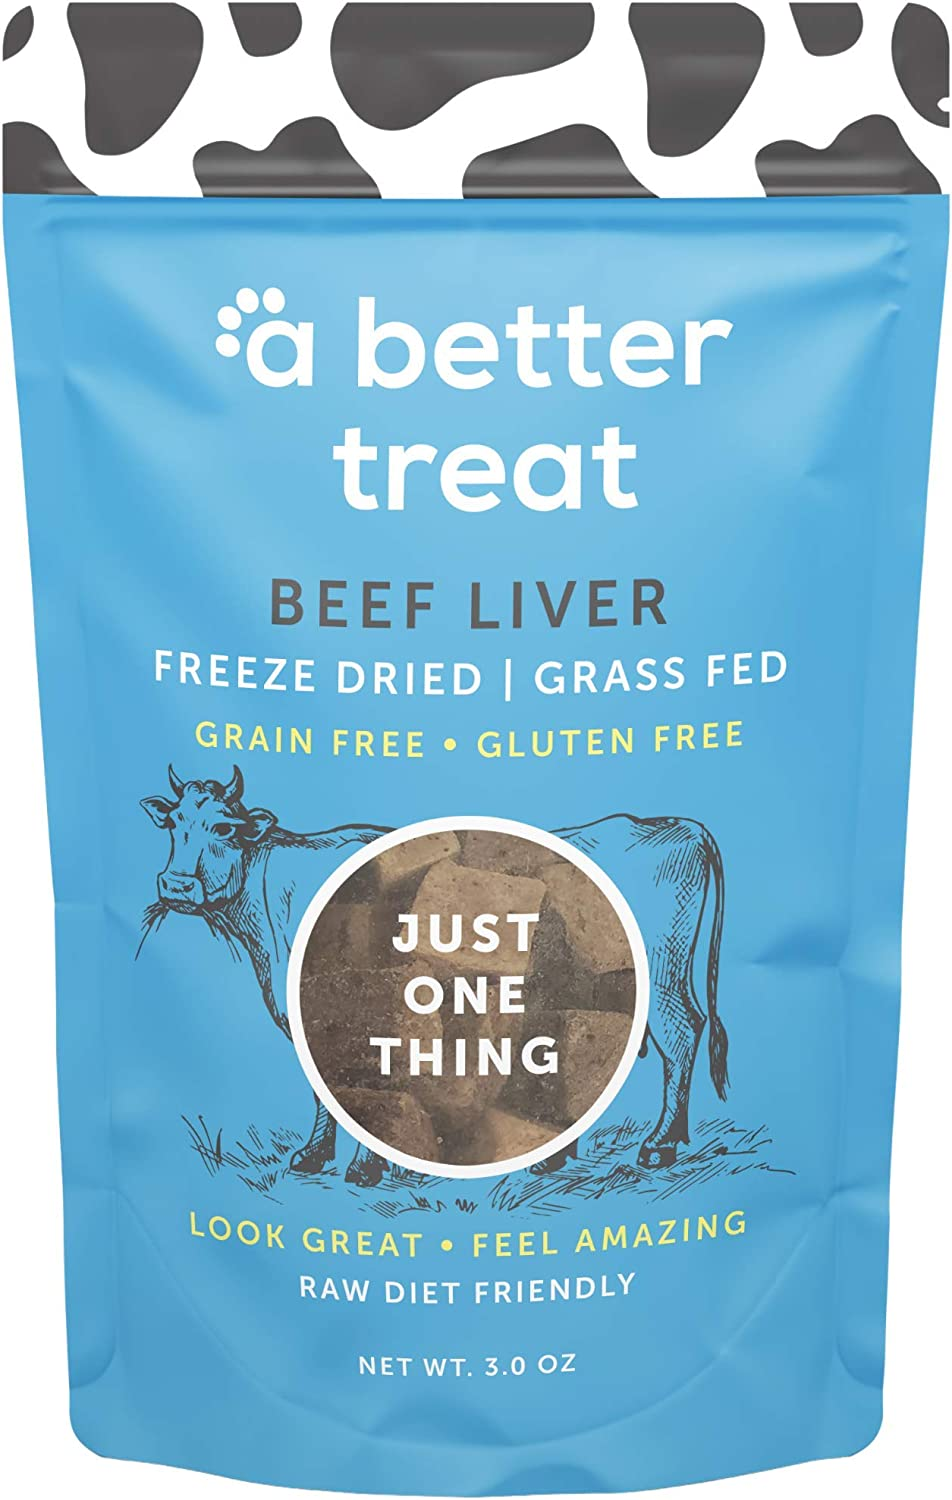 A BETTER TREAT – Freeze Dried Beef Dog Treats, Grass Fed, Beef Liver Single Ingredient | Natural, Healthy, High Value | Gluten Free, Grain Free, High Protein, Diabetic Friendly | Made in The USA